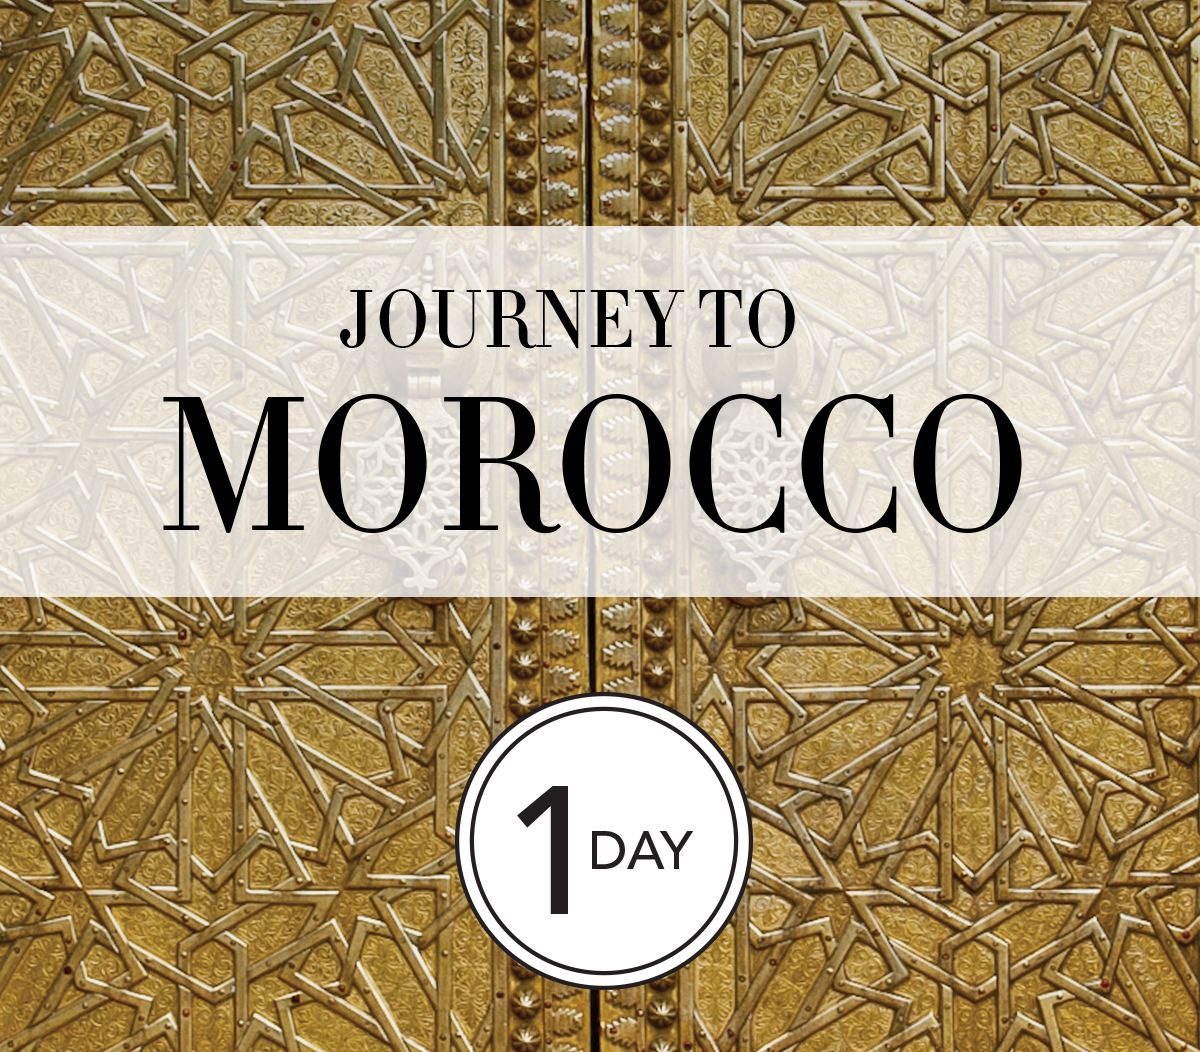 Saturday, October Twenty First - Journey to Morocco - 1 Day